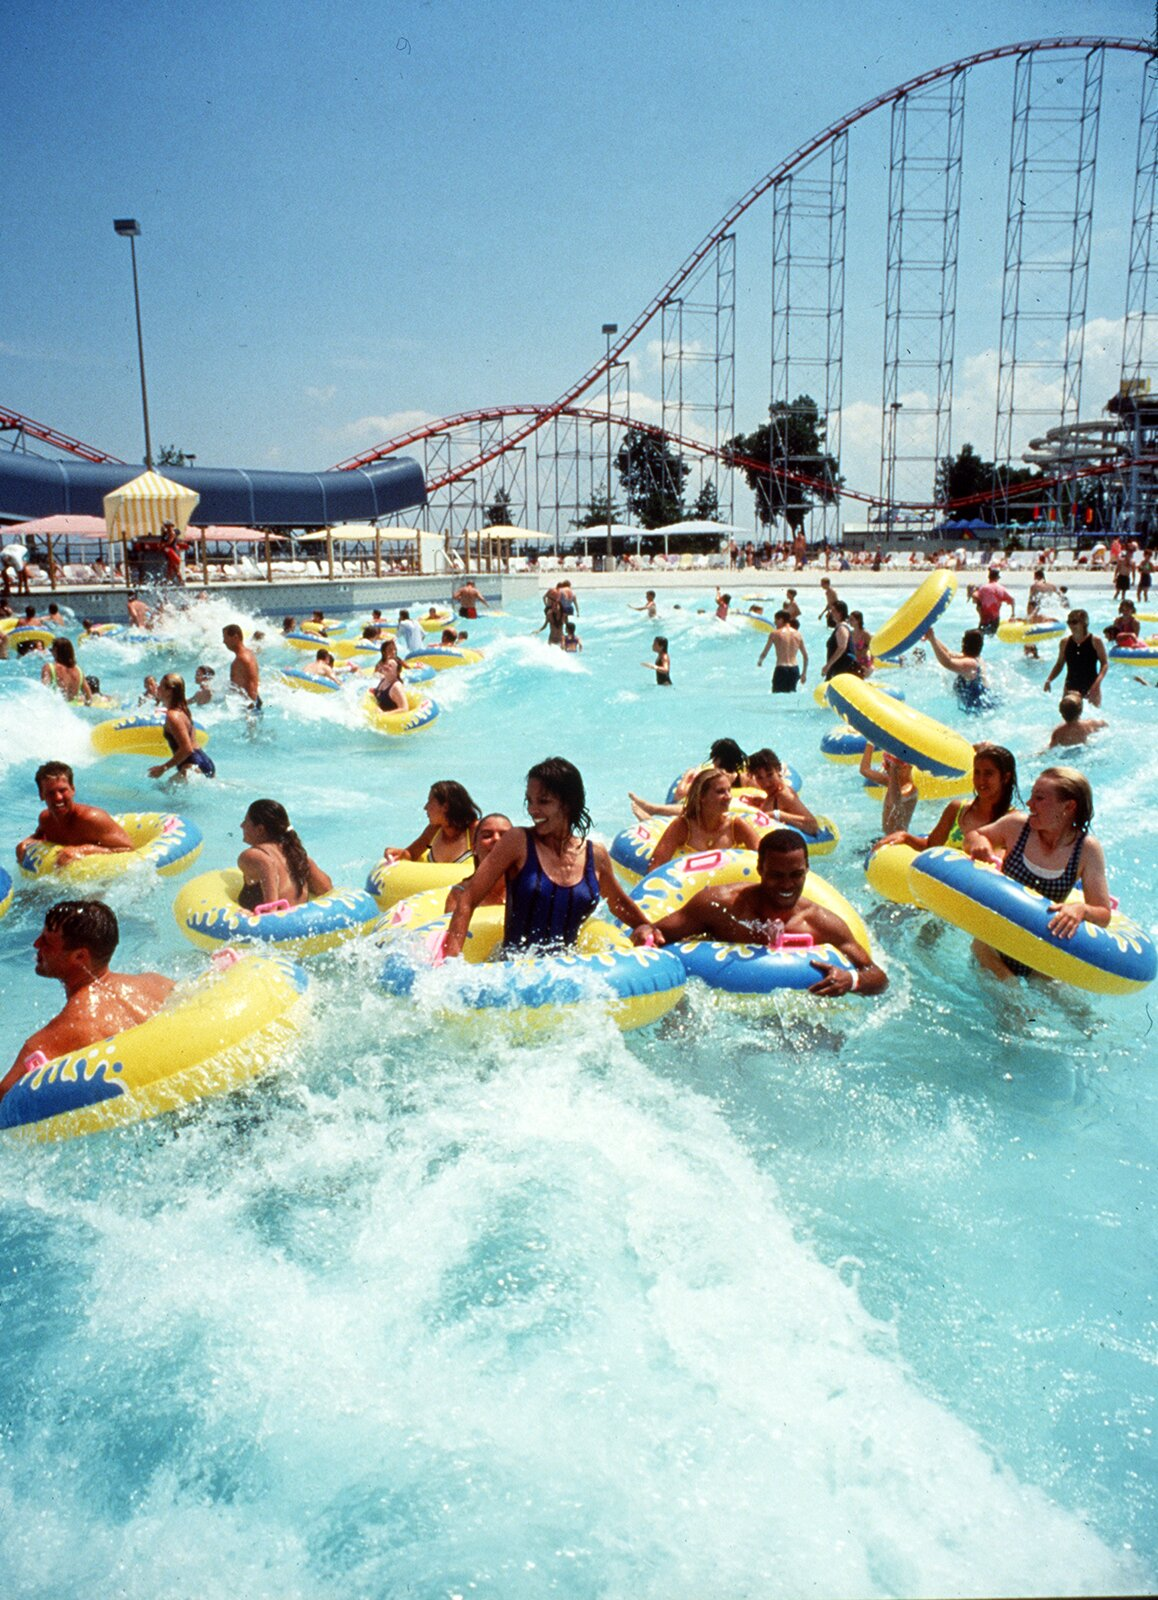 water park is next - photo #5